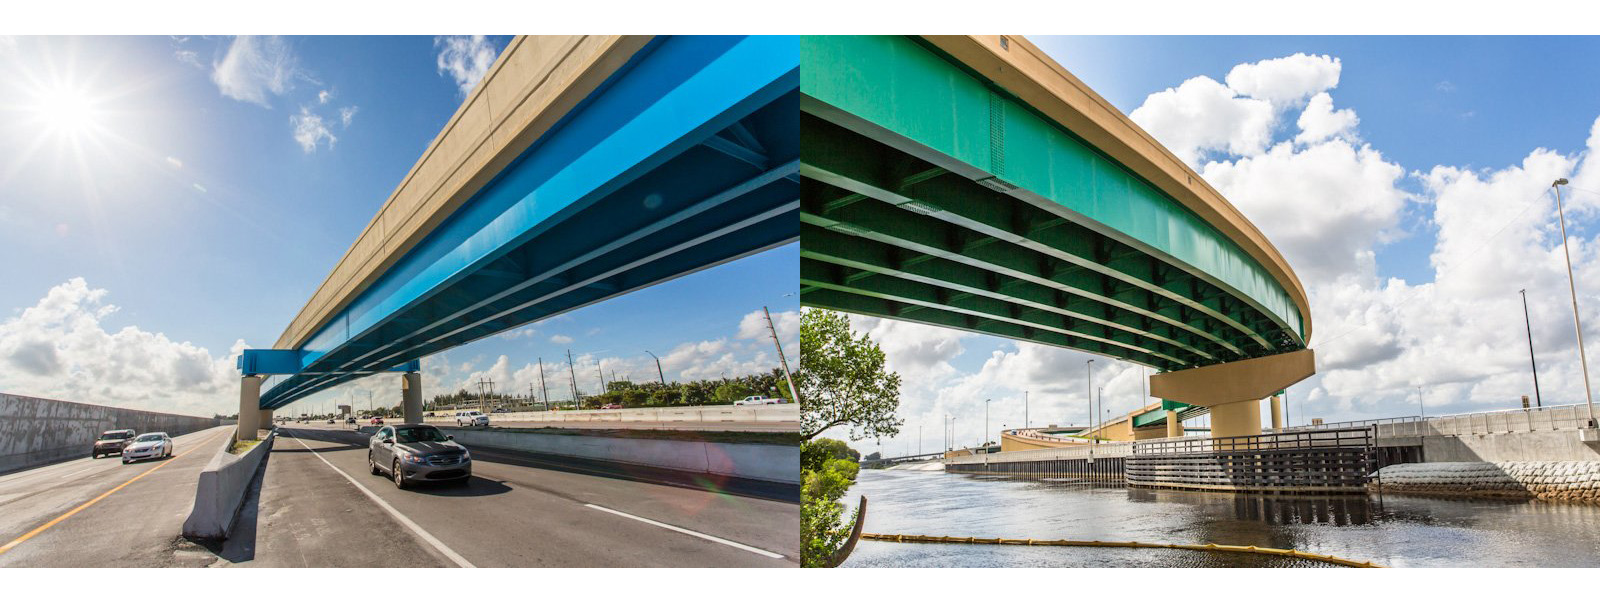 before-after-bridge-design